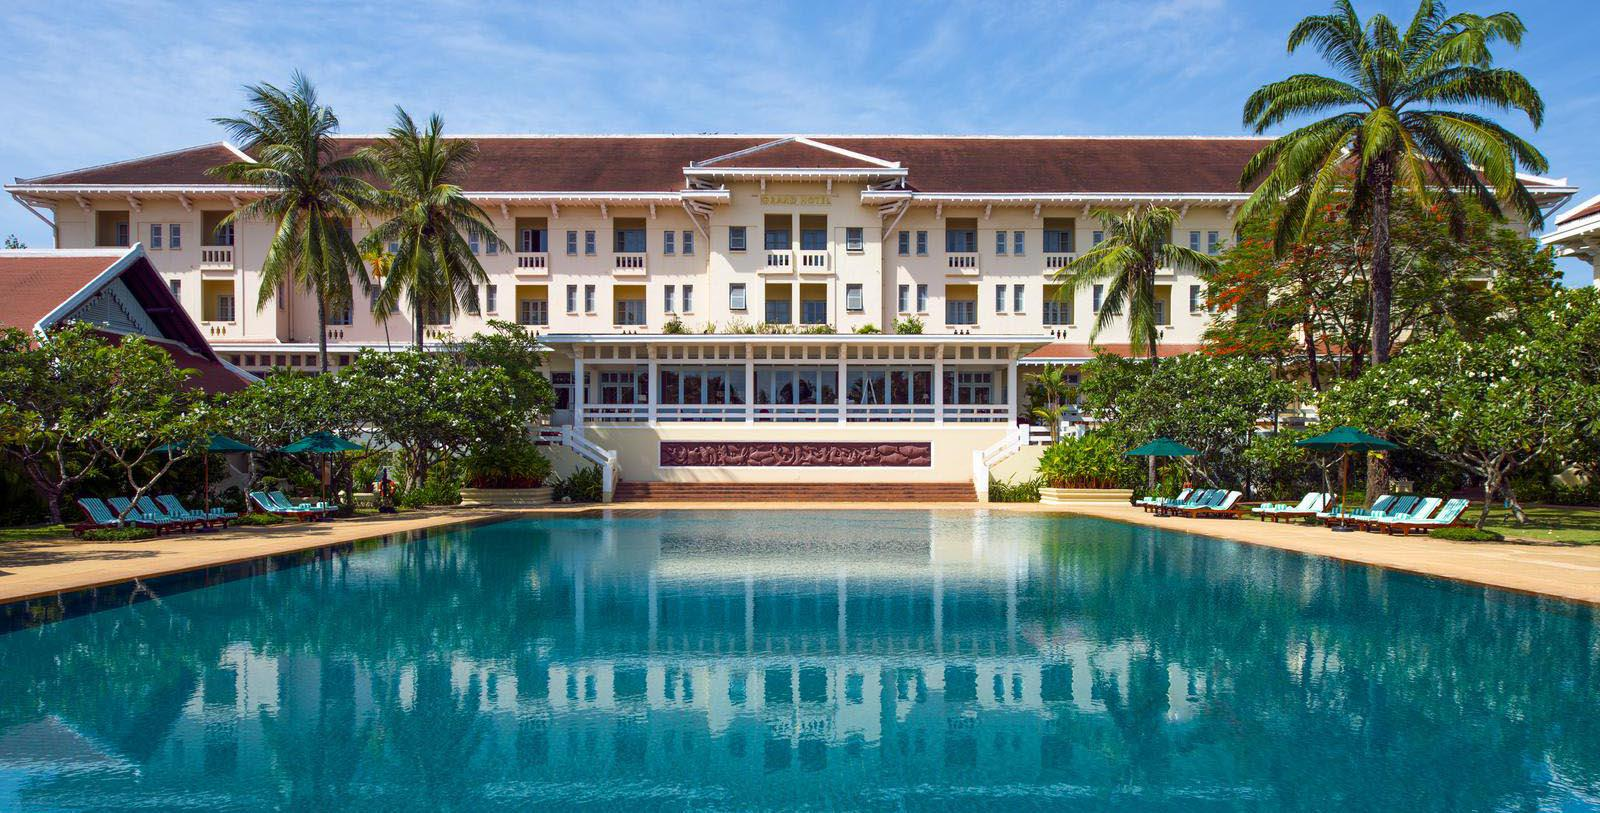 Image of Pool Raffles Grand Hotel D'Angkor, 1932, Member of Historic Hotels Worldwide, in Siem Reap, Cambodia, Overview